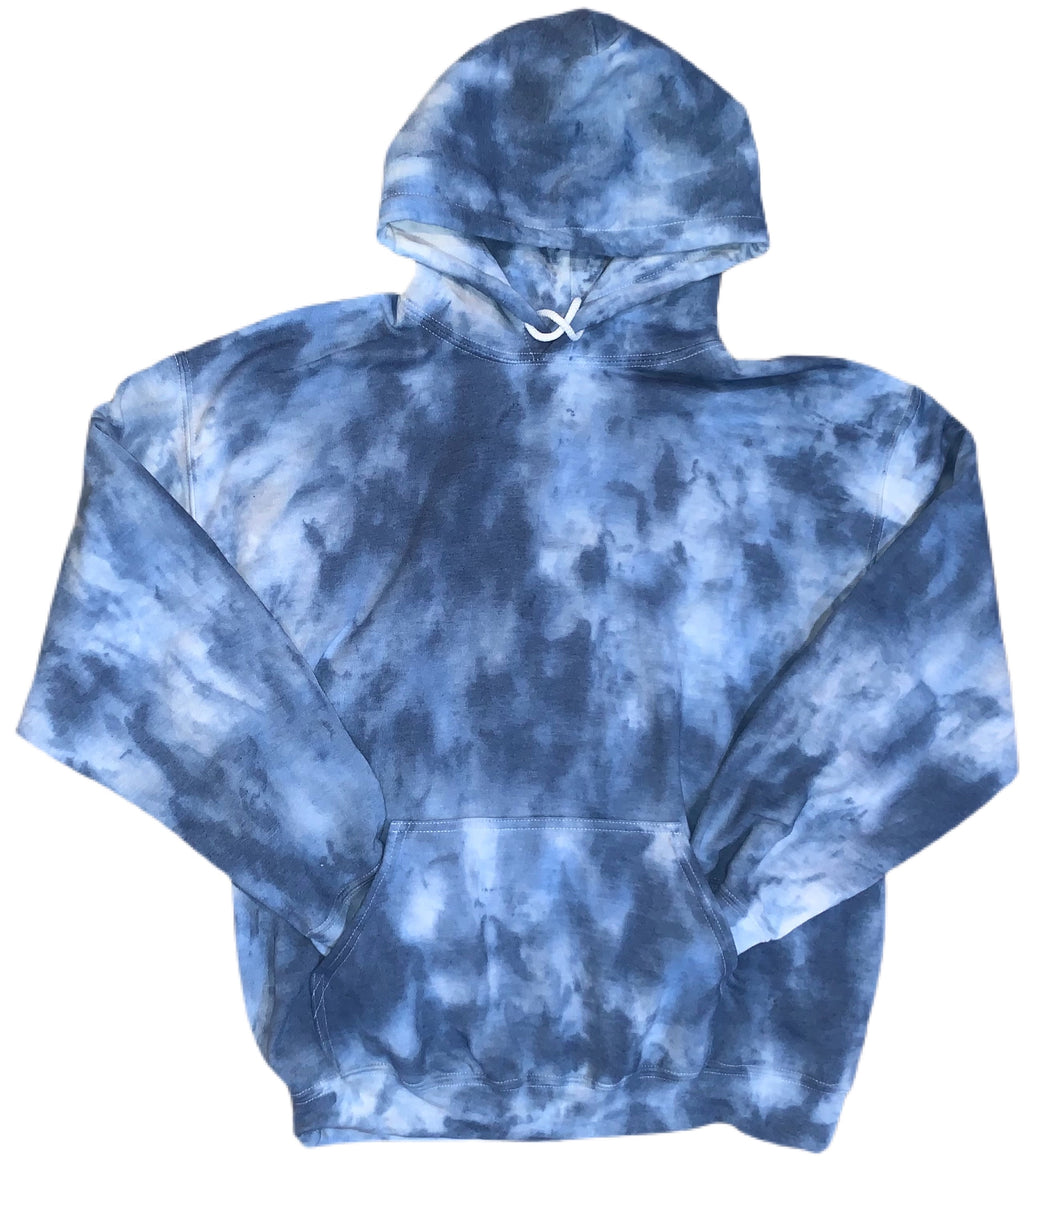 Influenced by Krista - Adult Tie-Dyed Pullover Hoodie